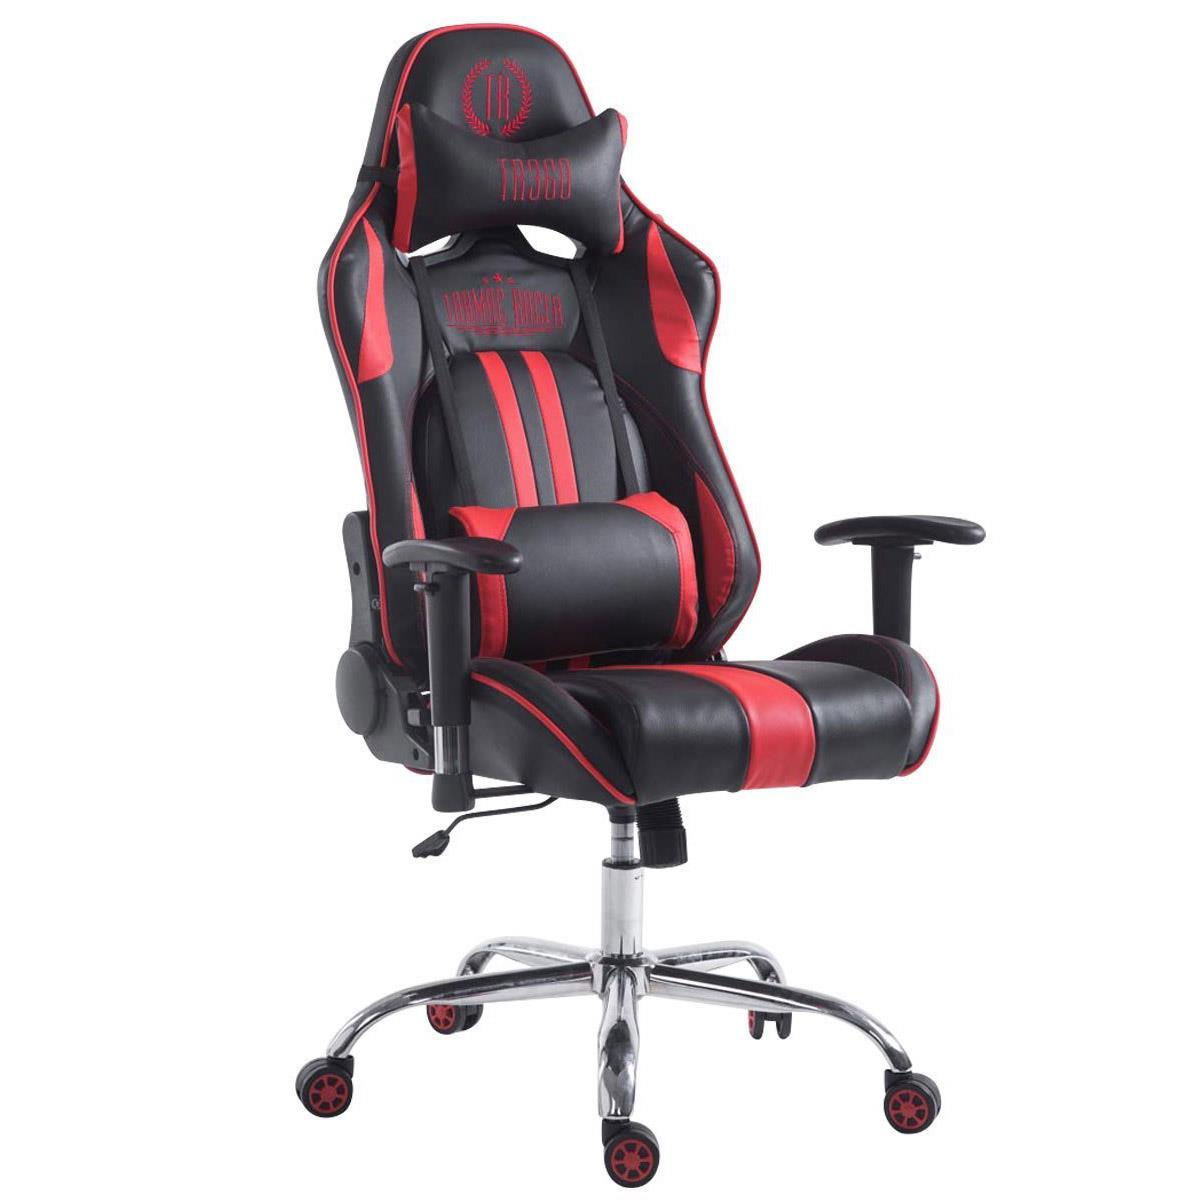 Silla Gaming LOGAN, Respaldo Reclinable, Cojines Incluidos, Base de Metal, En Negro/Rojo